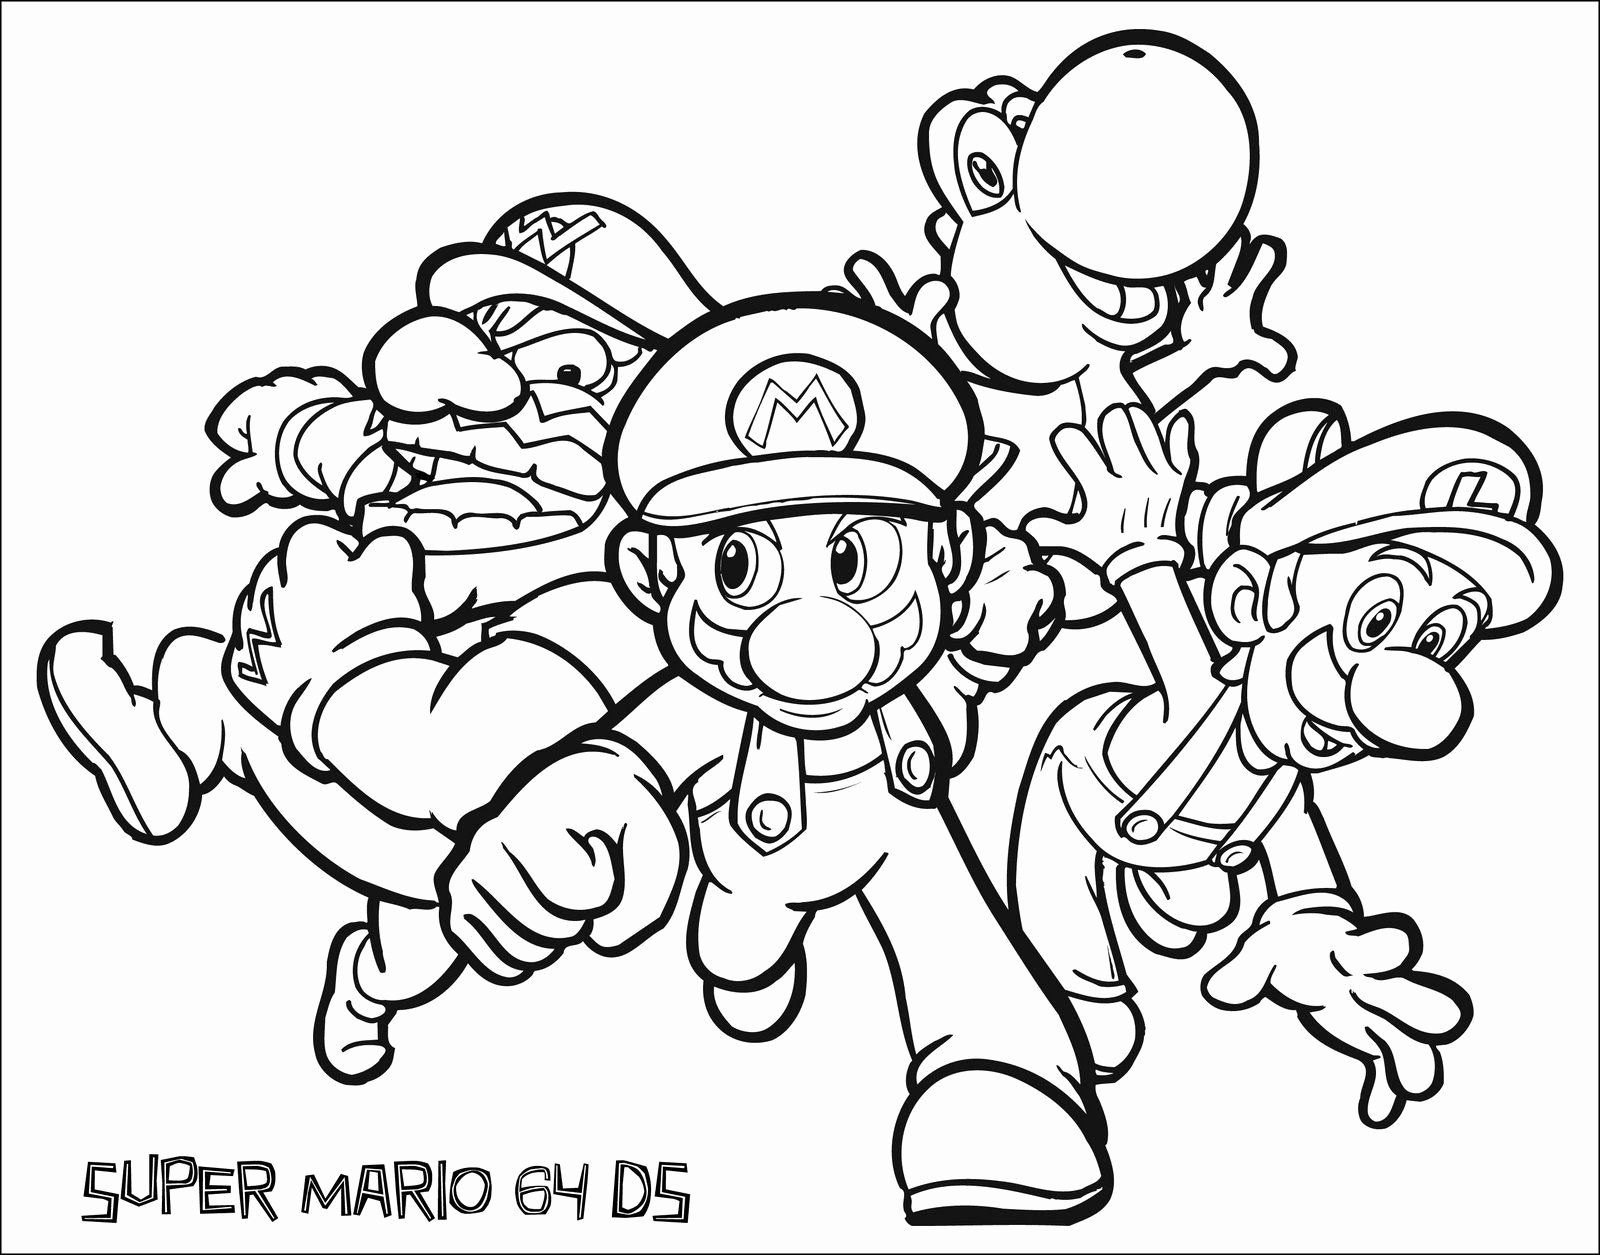 Printable Keys Coloring Pages Inspirational Super Mario Bros Party